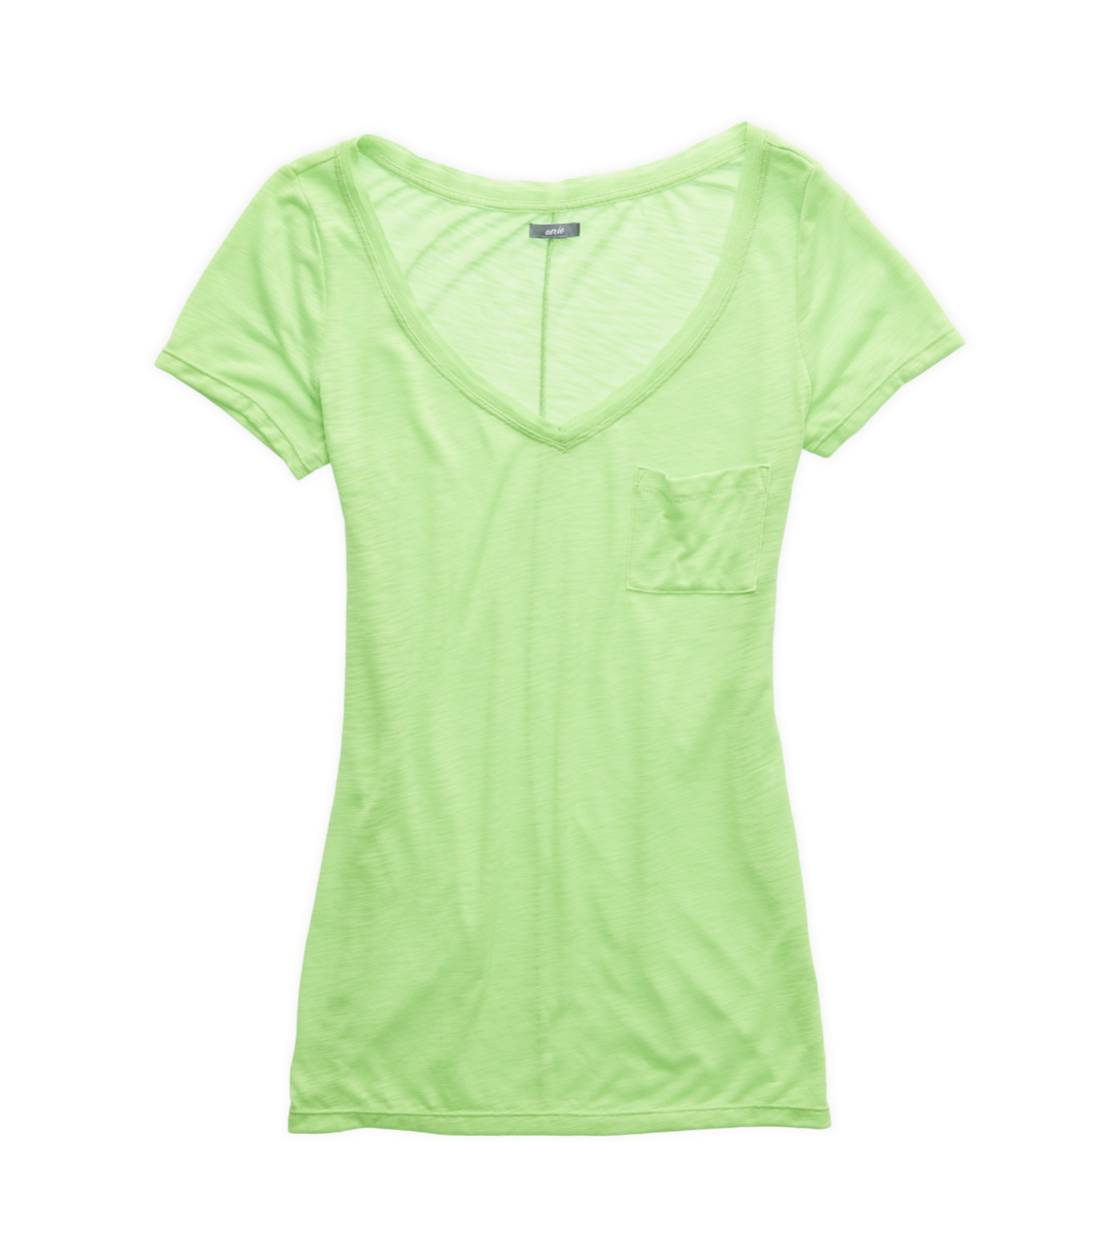 Laser Green Aerie Slim Fit V-Neck Pocket T-Shirt